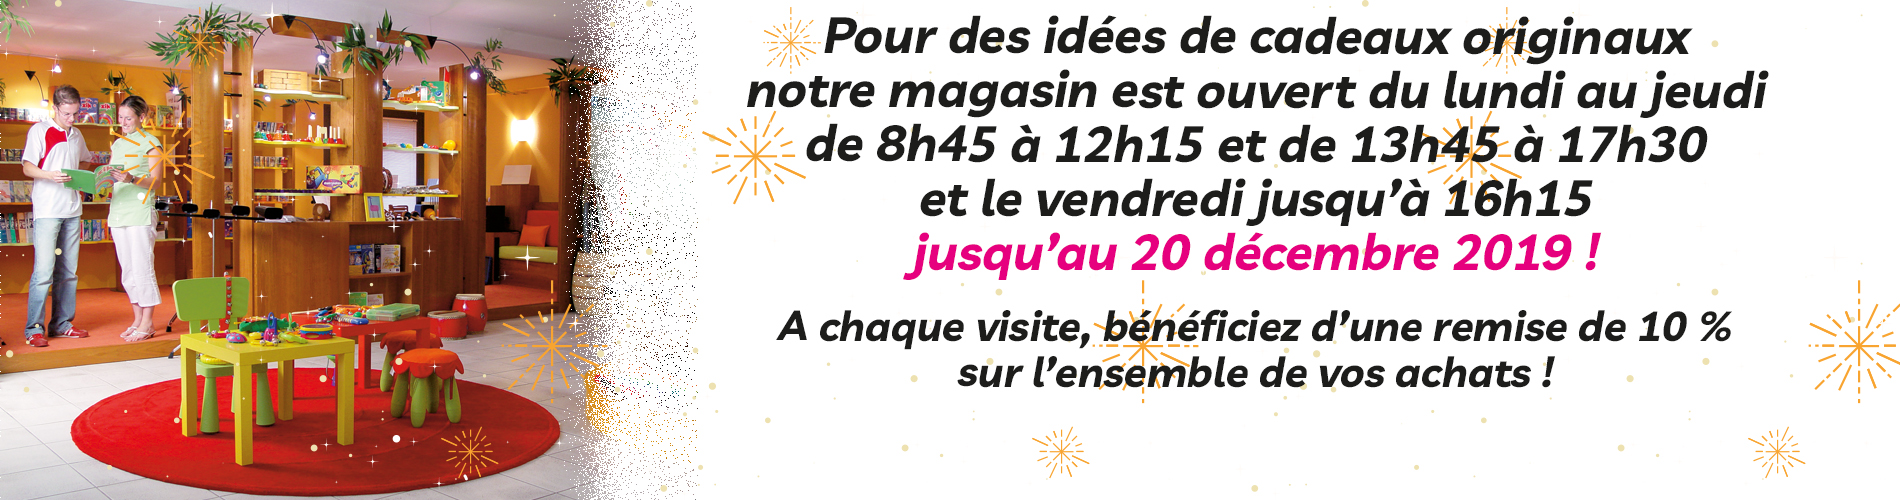 OUVERTURE MAGASIN NOEL